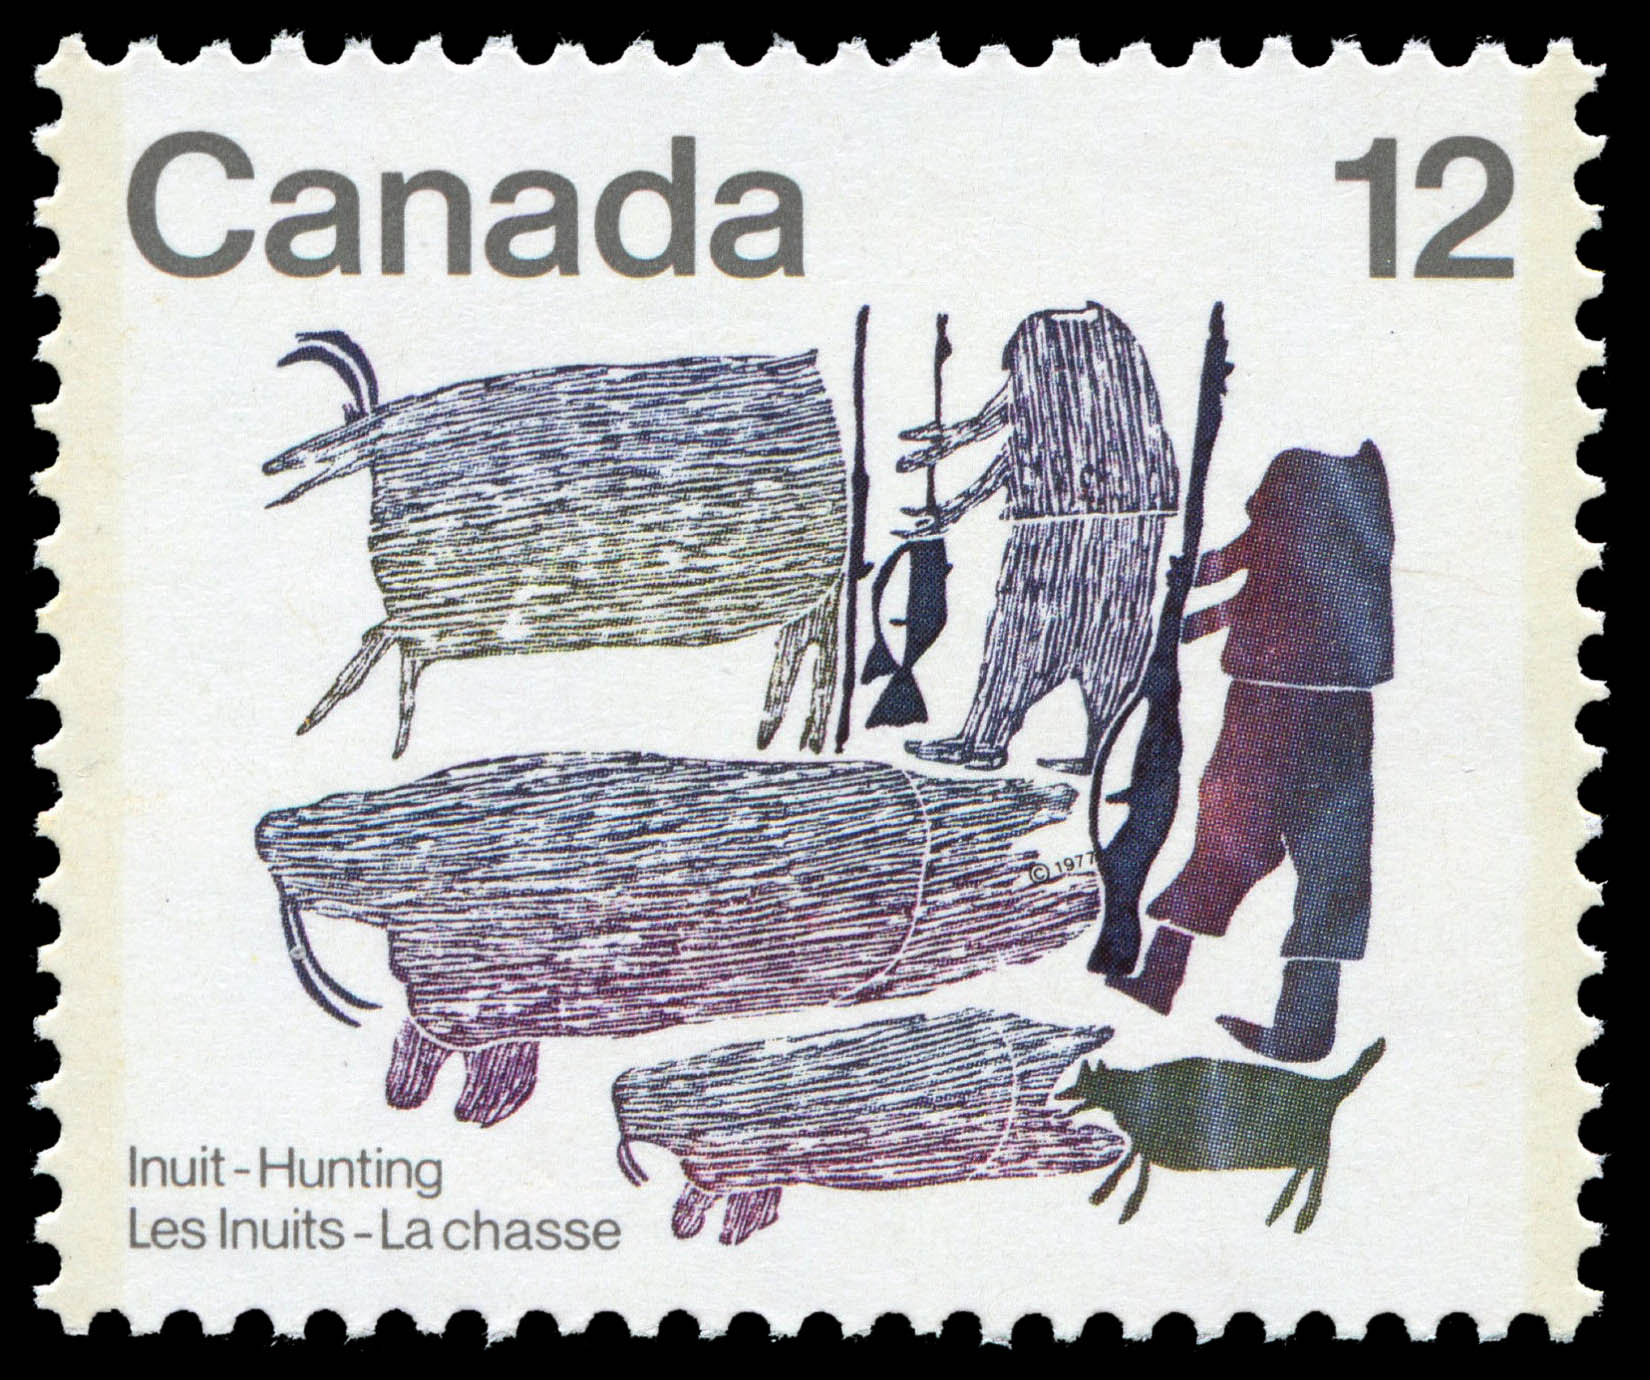 Hunters of Old Canada Postage Stamp